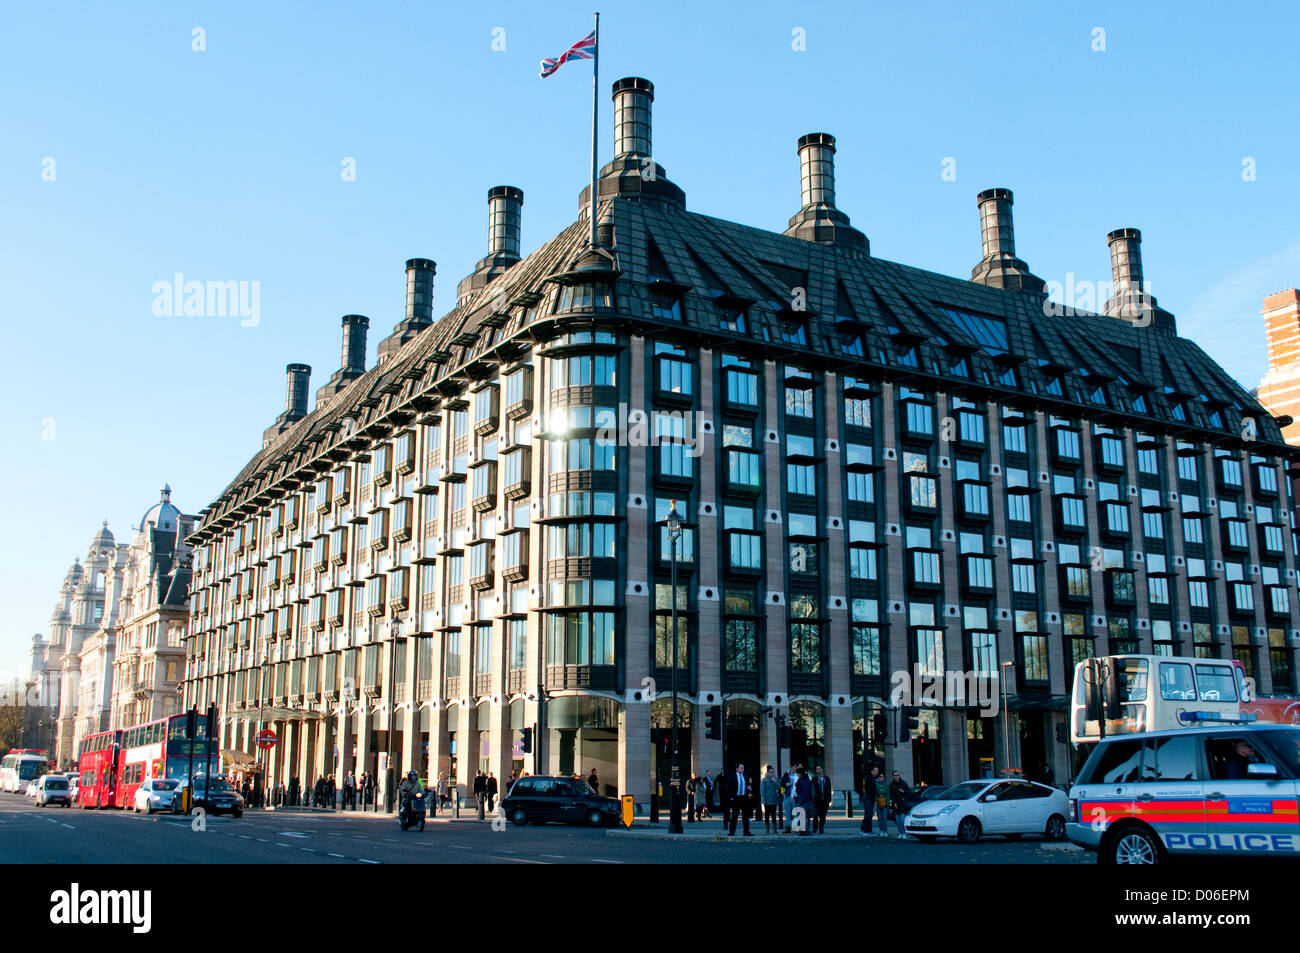 Portcullis House, opposite Big Ben and the Houses of Parliament, London, UK - Stock Image